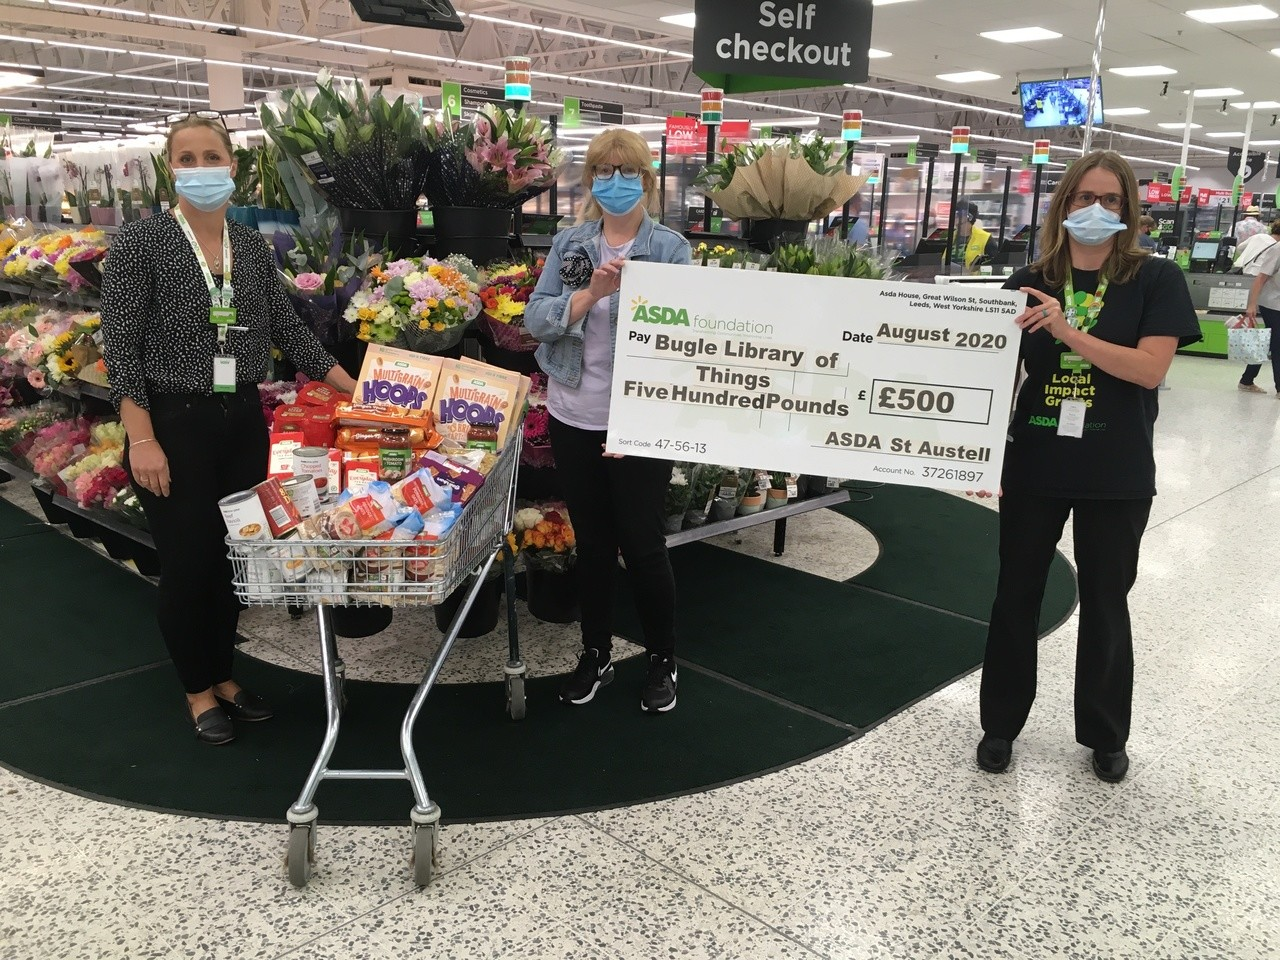 £500 grant to Bugle Library of Things | Asda St Austell